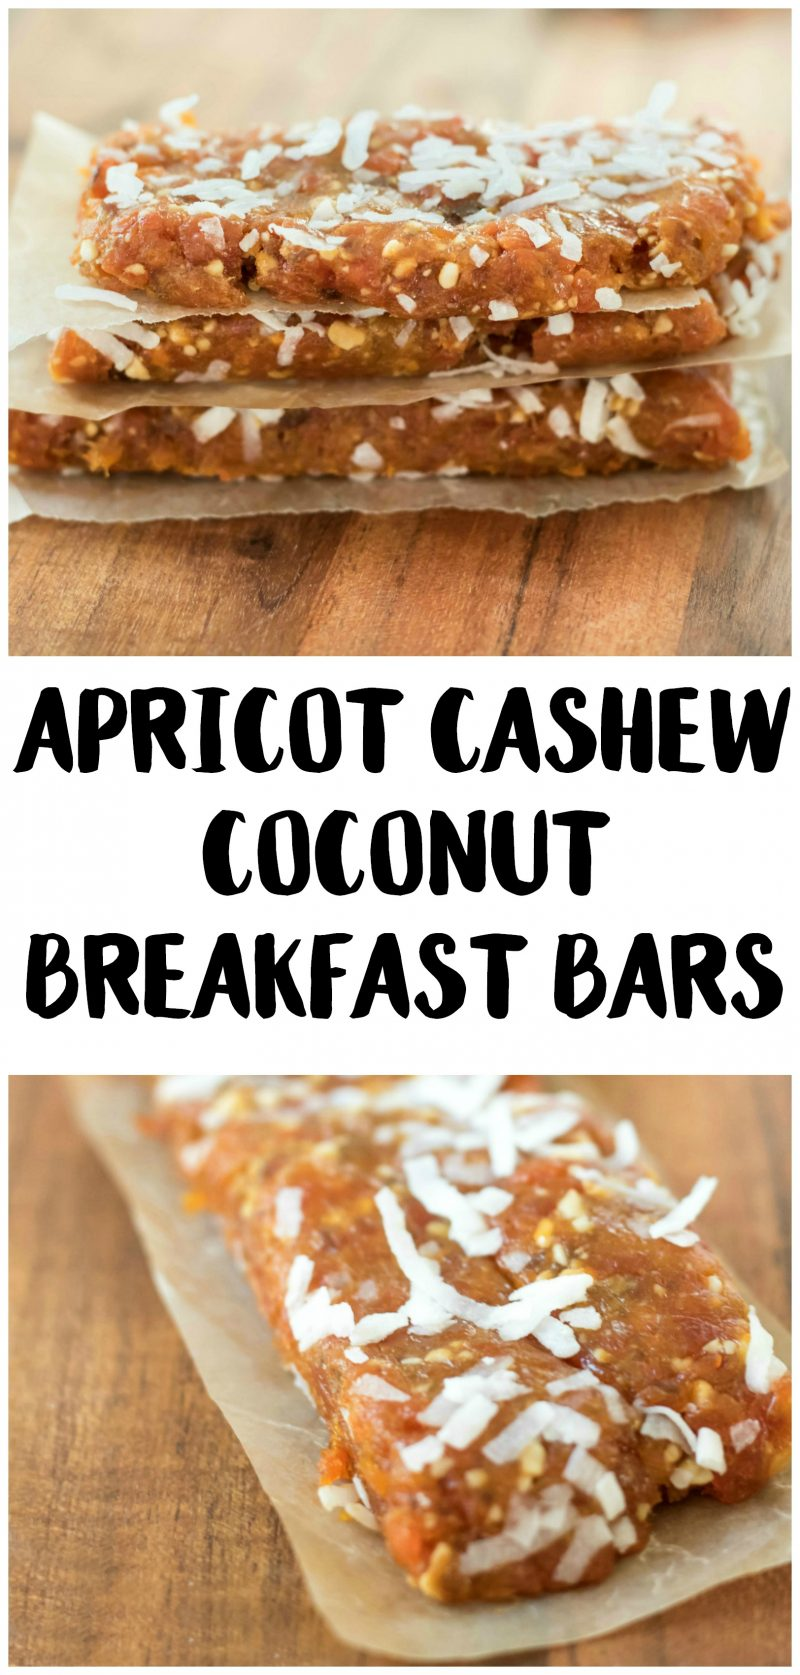 A quick breakfast can be so much more than a cup of oatmeal! These easy DIY Apricot Cashew Coconut Breakfast Bars are delicious and easy to customize- the ideas are endless! The best part is, they're even healthy!